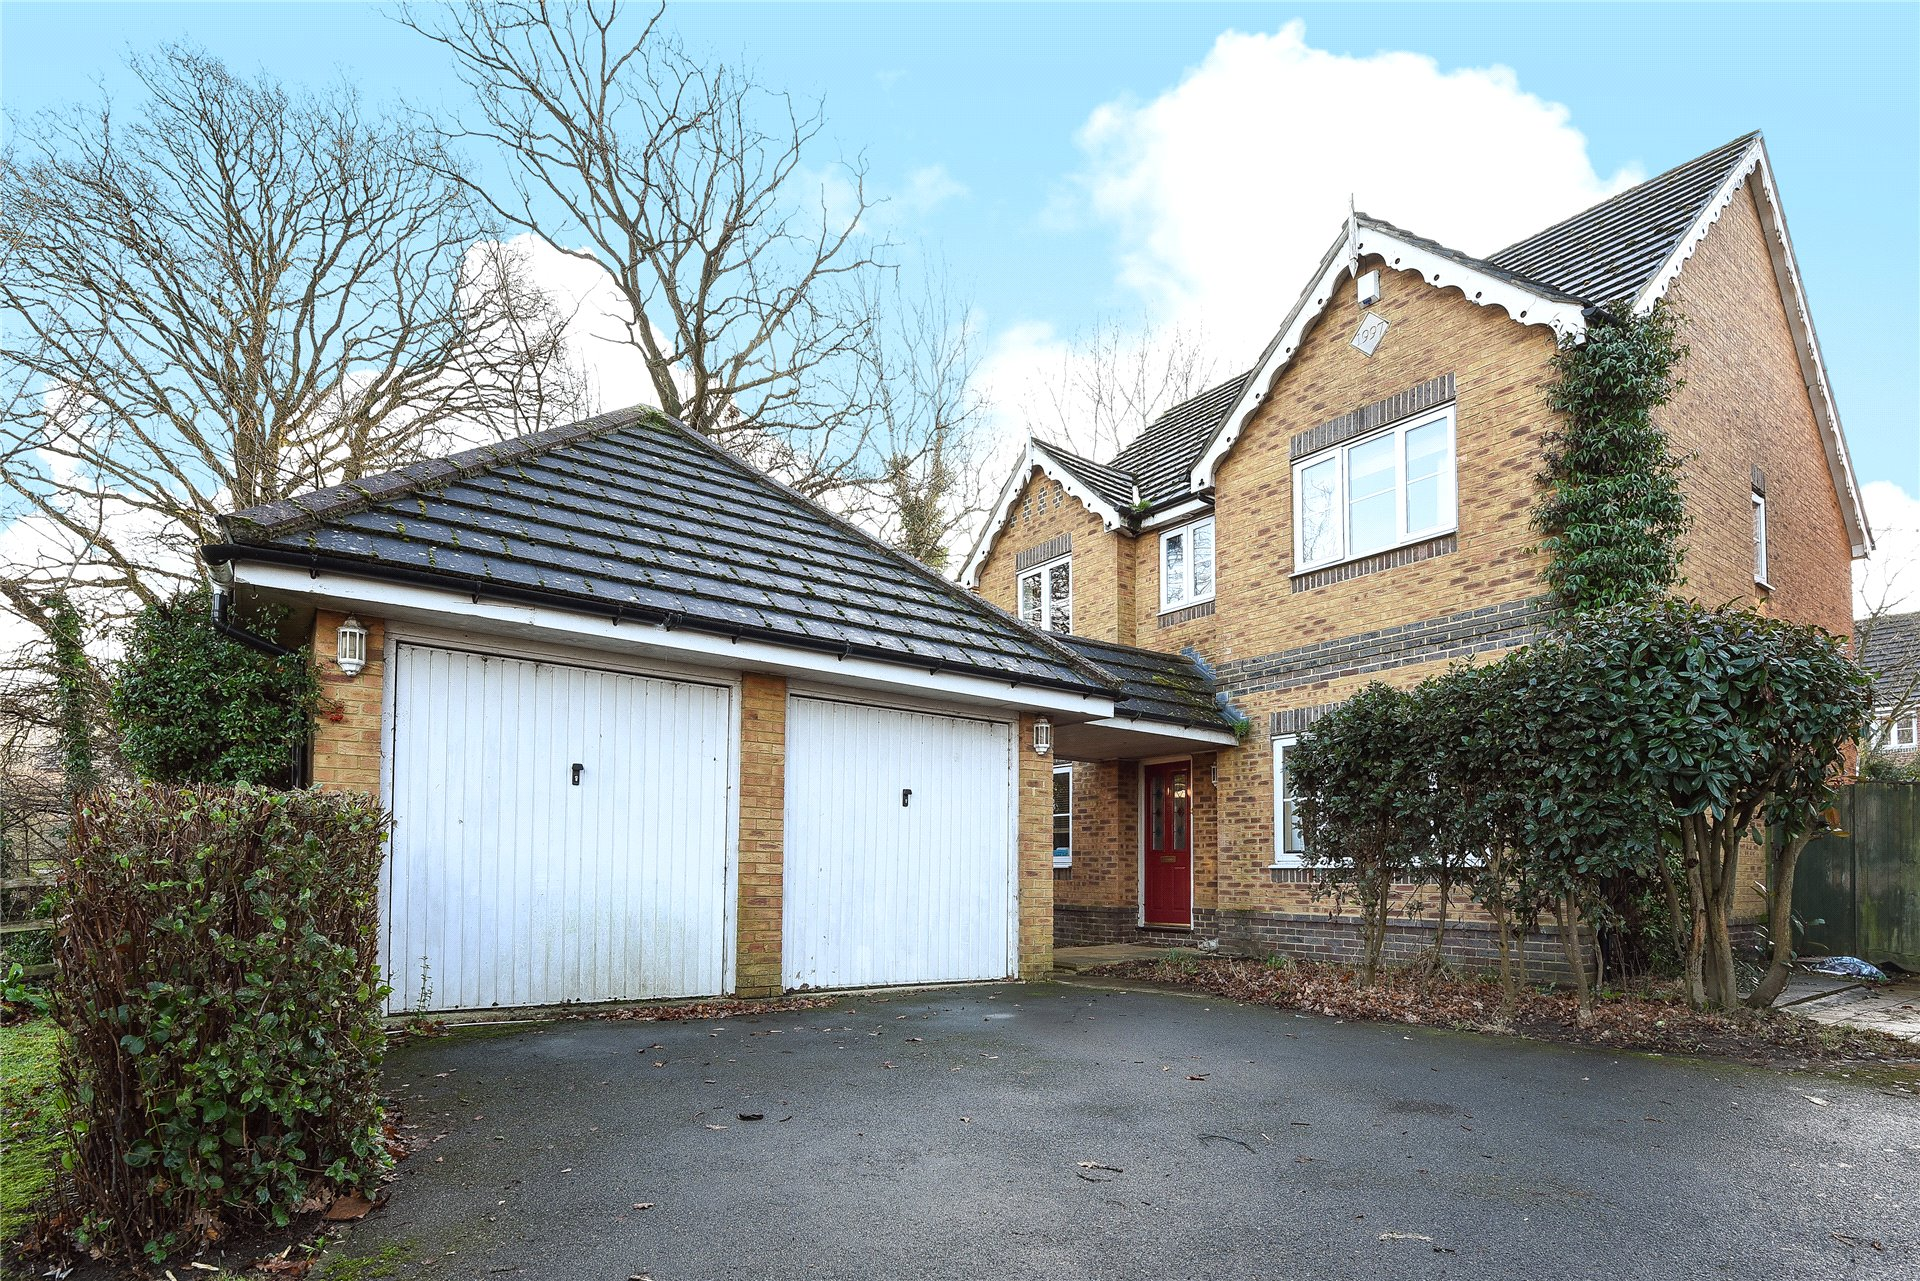 4 Bedrooms Detached House for sale in Darby Vale, Warfield, Berkshire, RG42